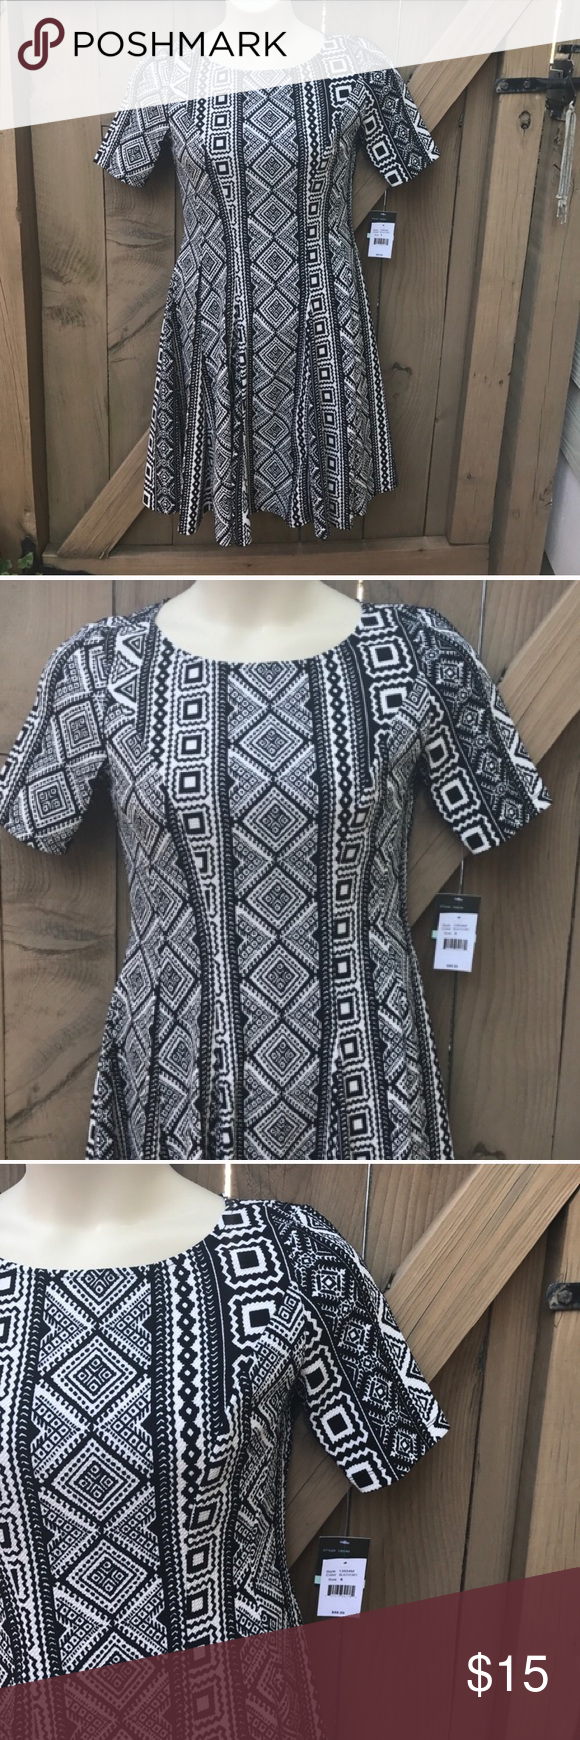 NWT Gabby Skye fit and flare aztec dress size 8 NWT size 8 Gabby Skye fit and flare aztec dress Gabby Skye Dresses